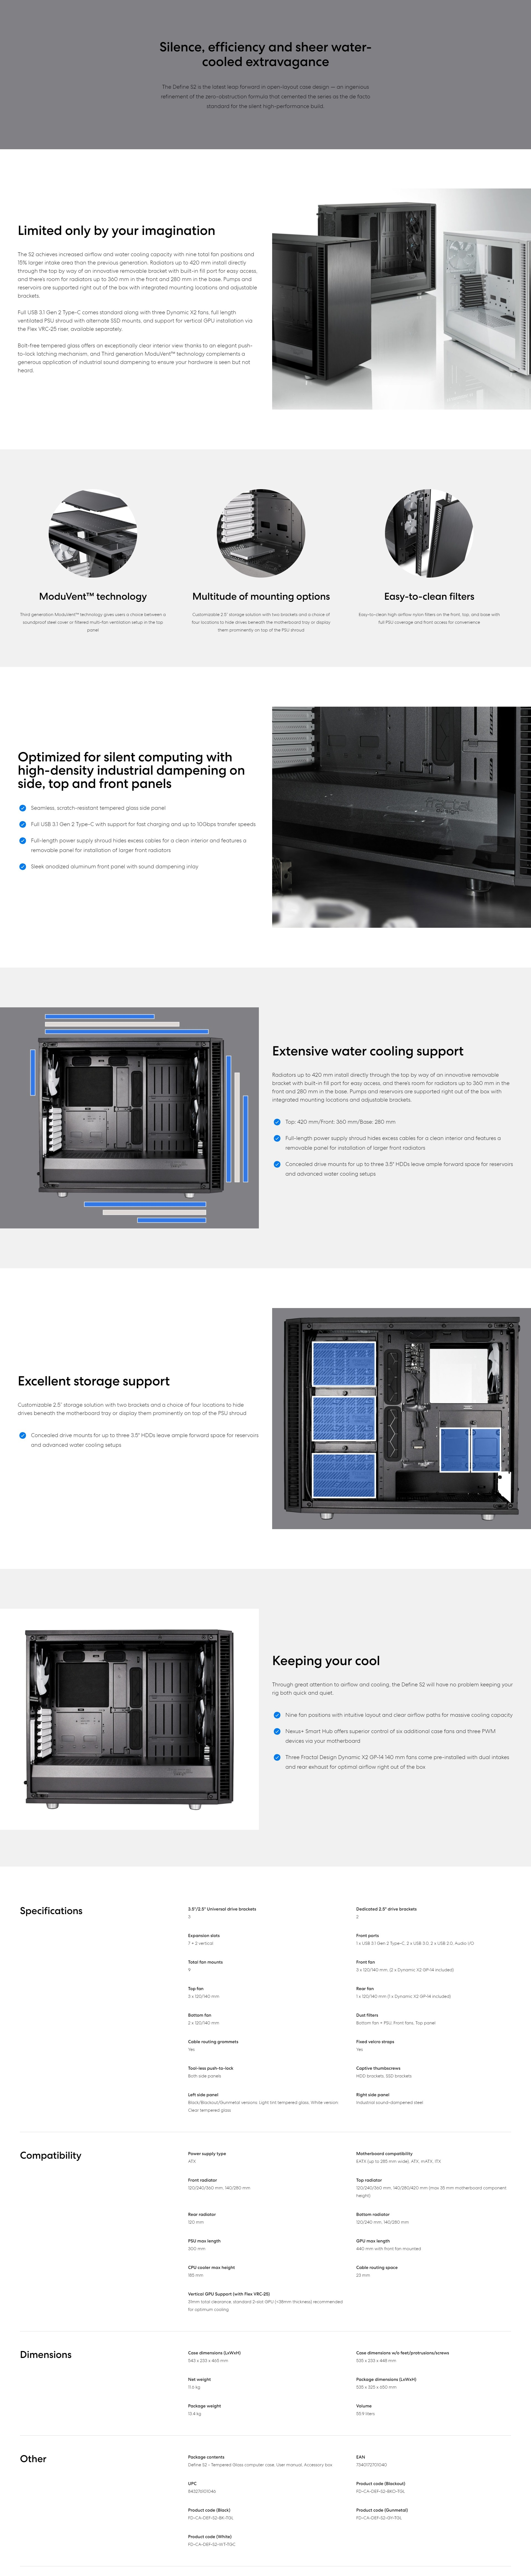 A large marketing image providing additional information about the product Fractal Design Define S2 Tempered Glass Mid Tower Case Blackout - Additional alt info not provided